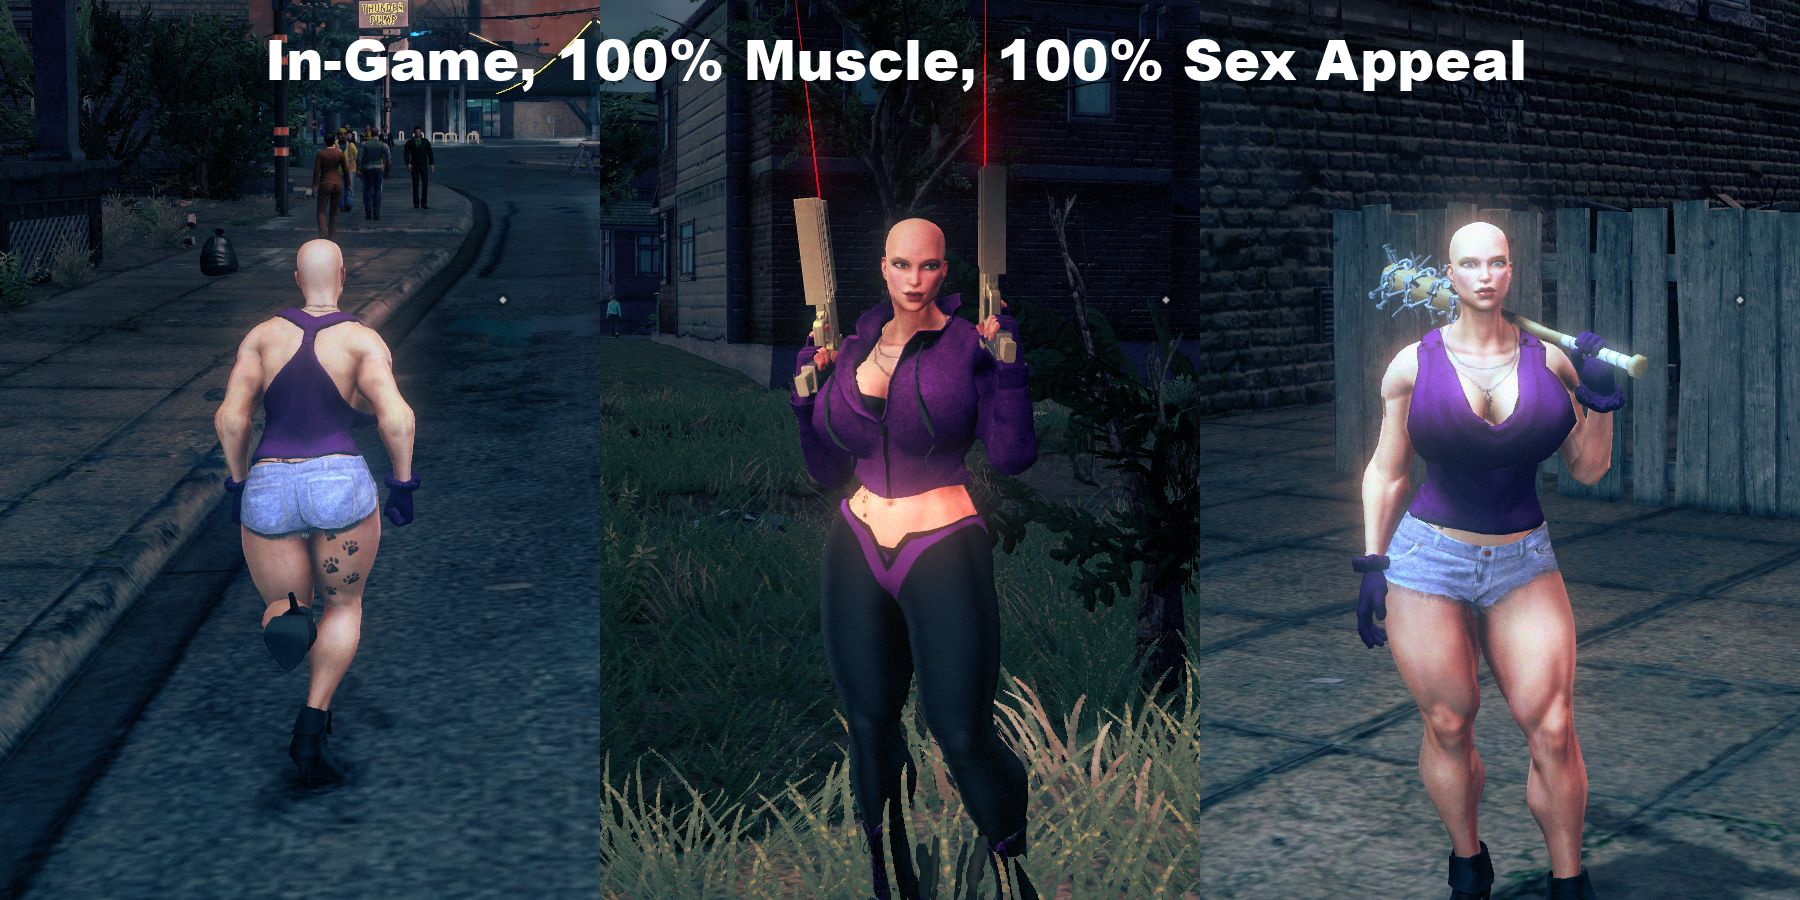 saints row 4 sex mod